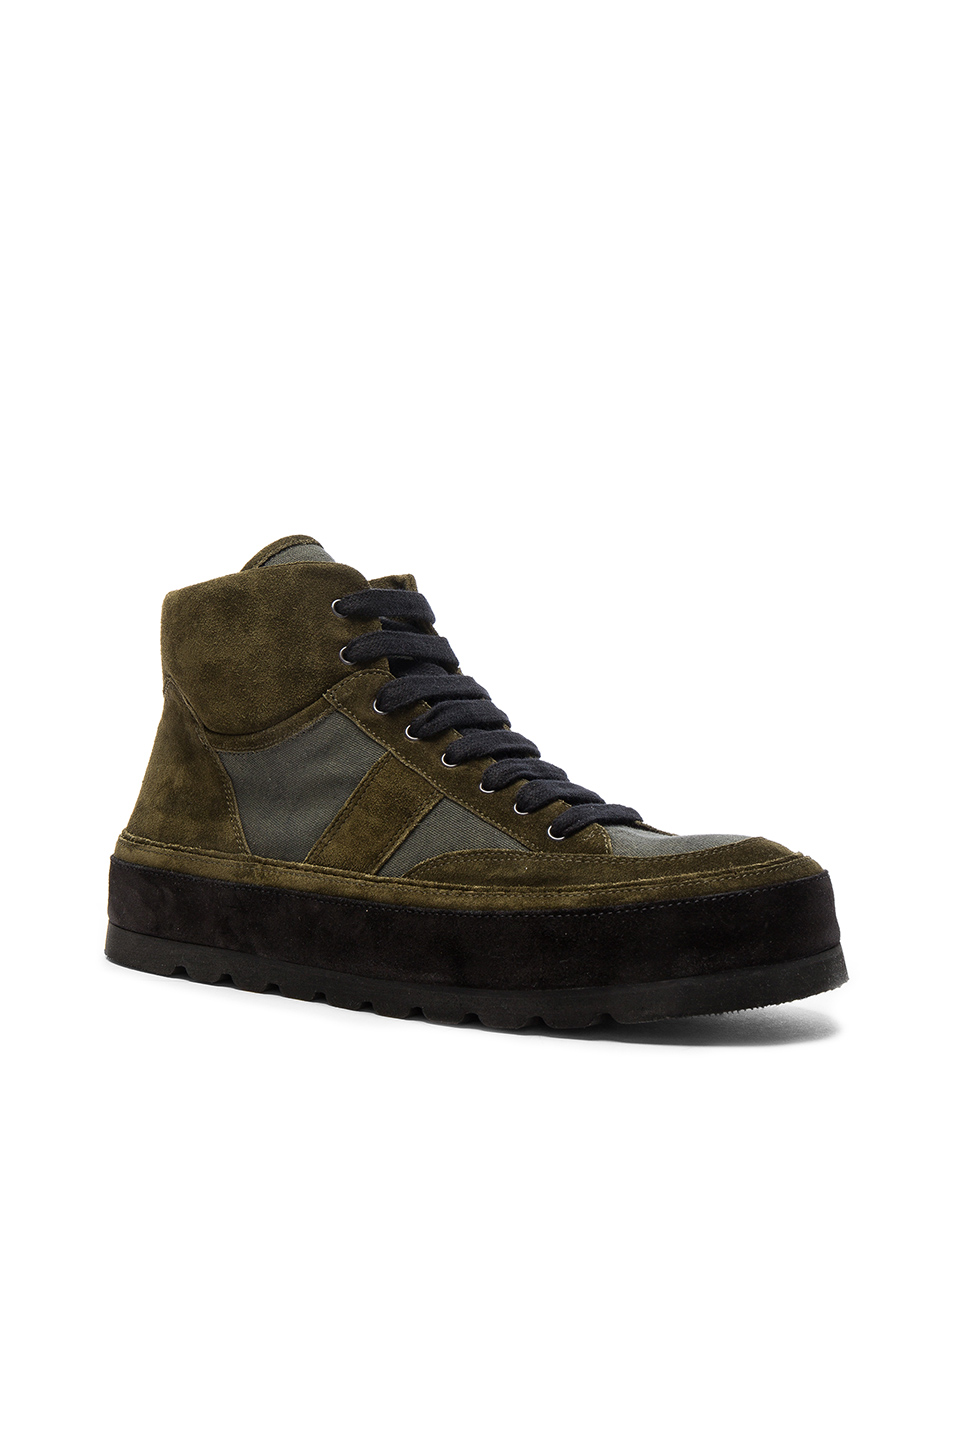 Ann Demeulemeester Canvas & Suede Sneakers in Green